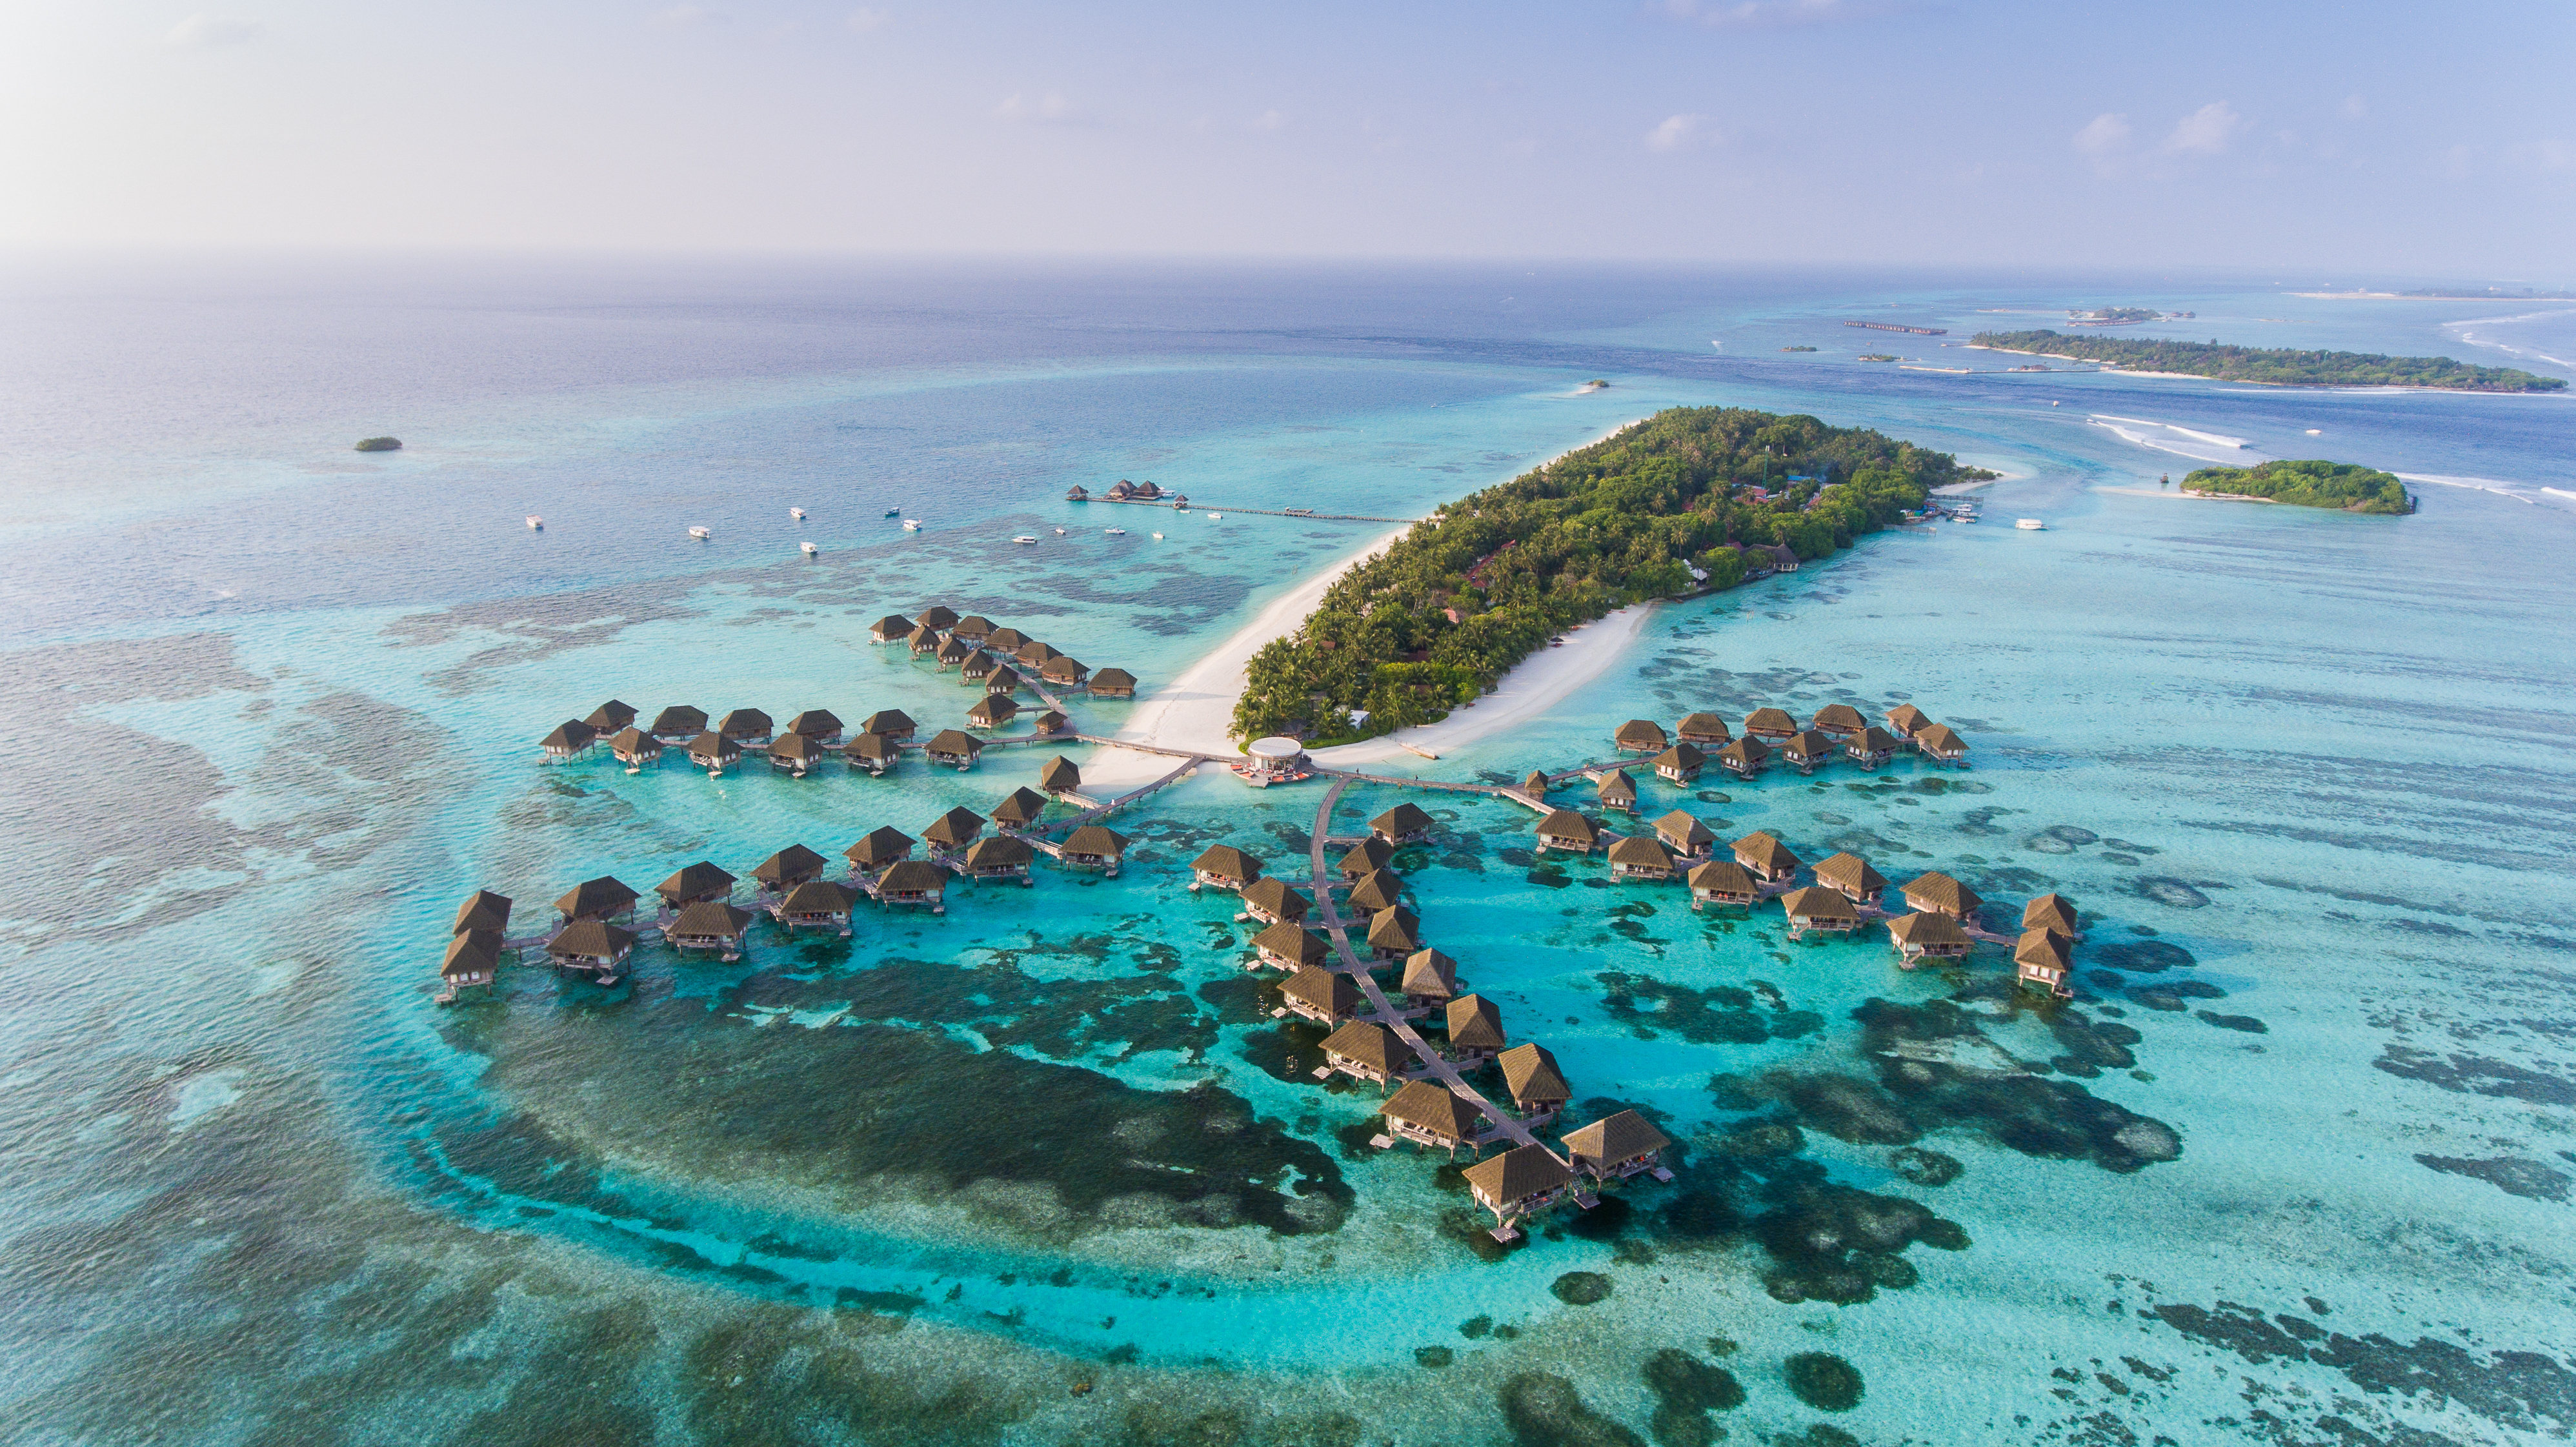 Maldives lifts all restrictions for visitors | CNN Travel